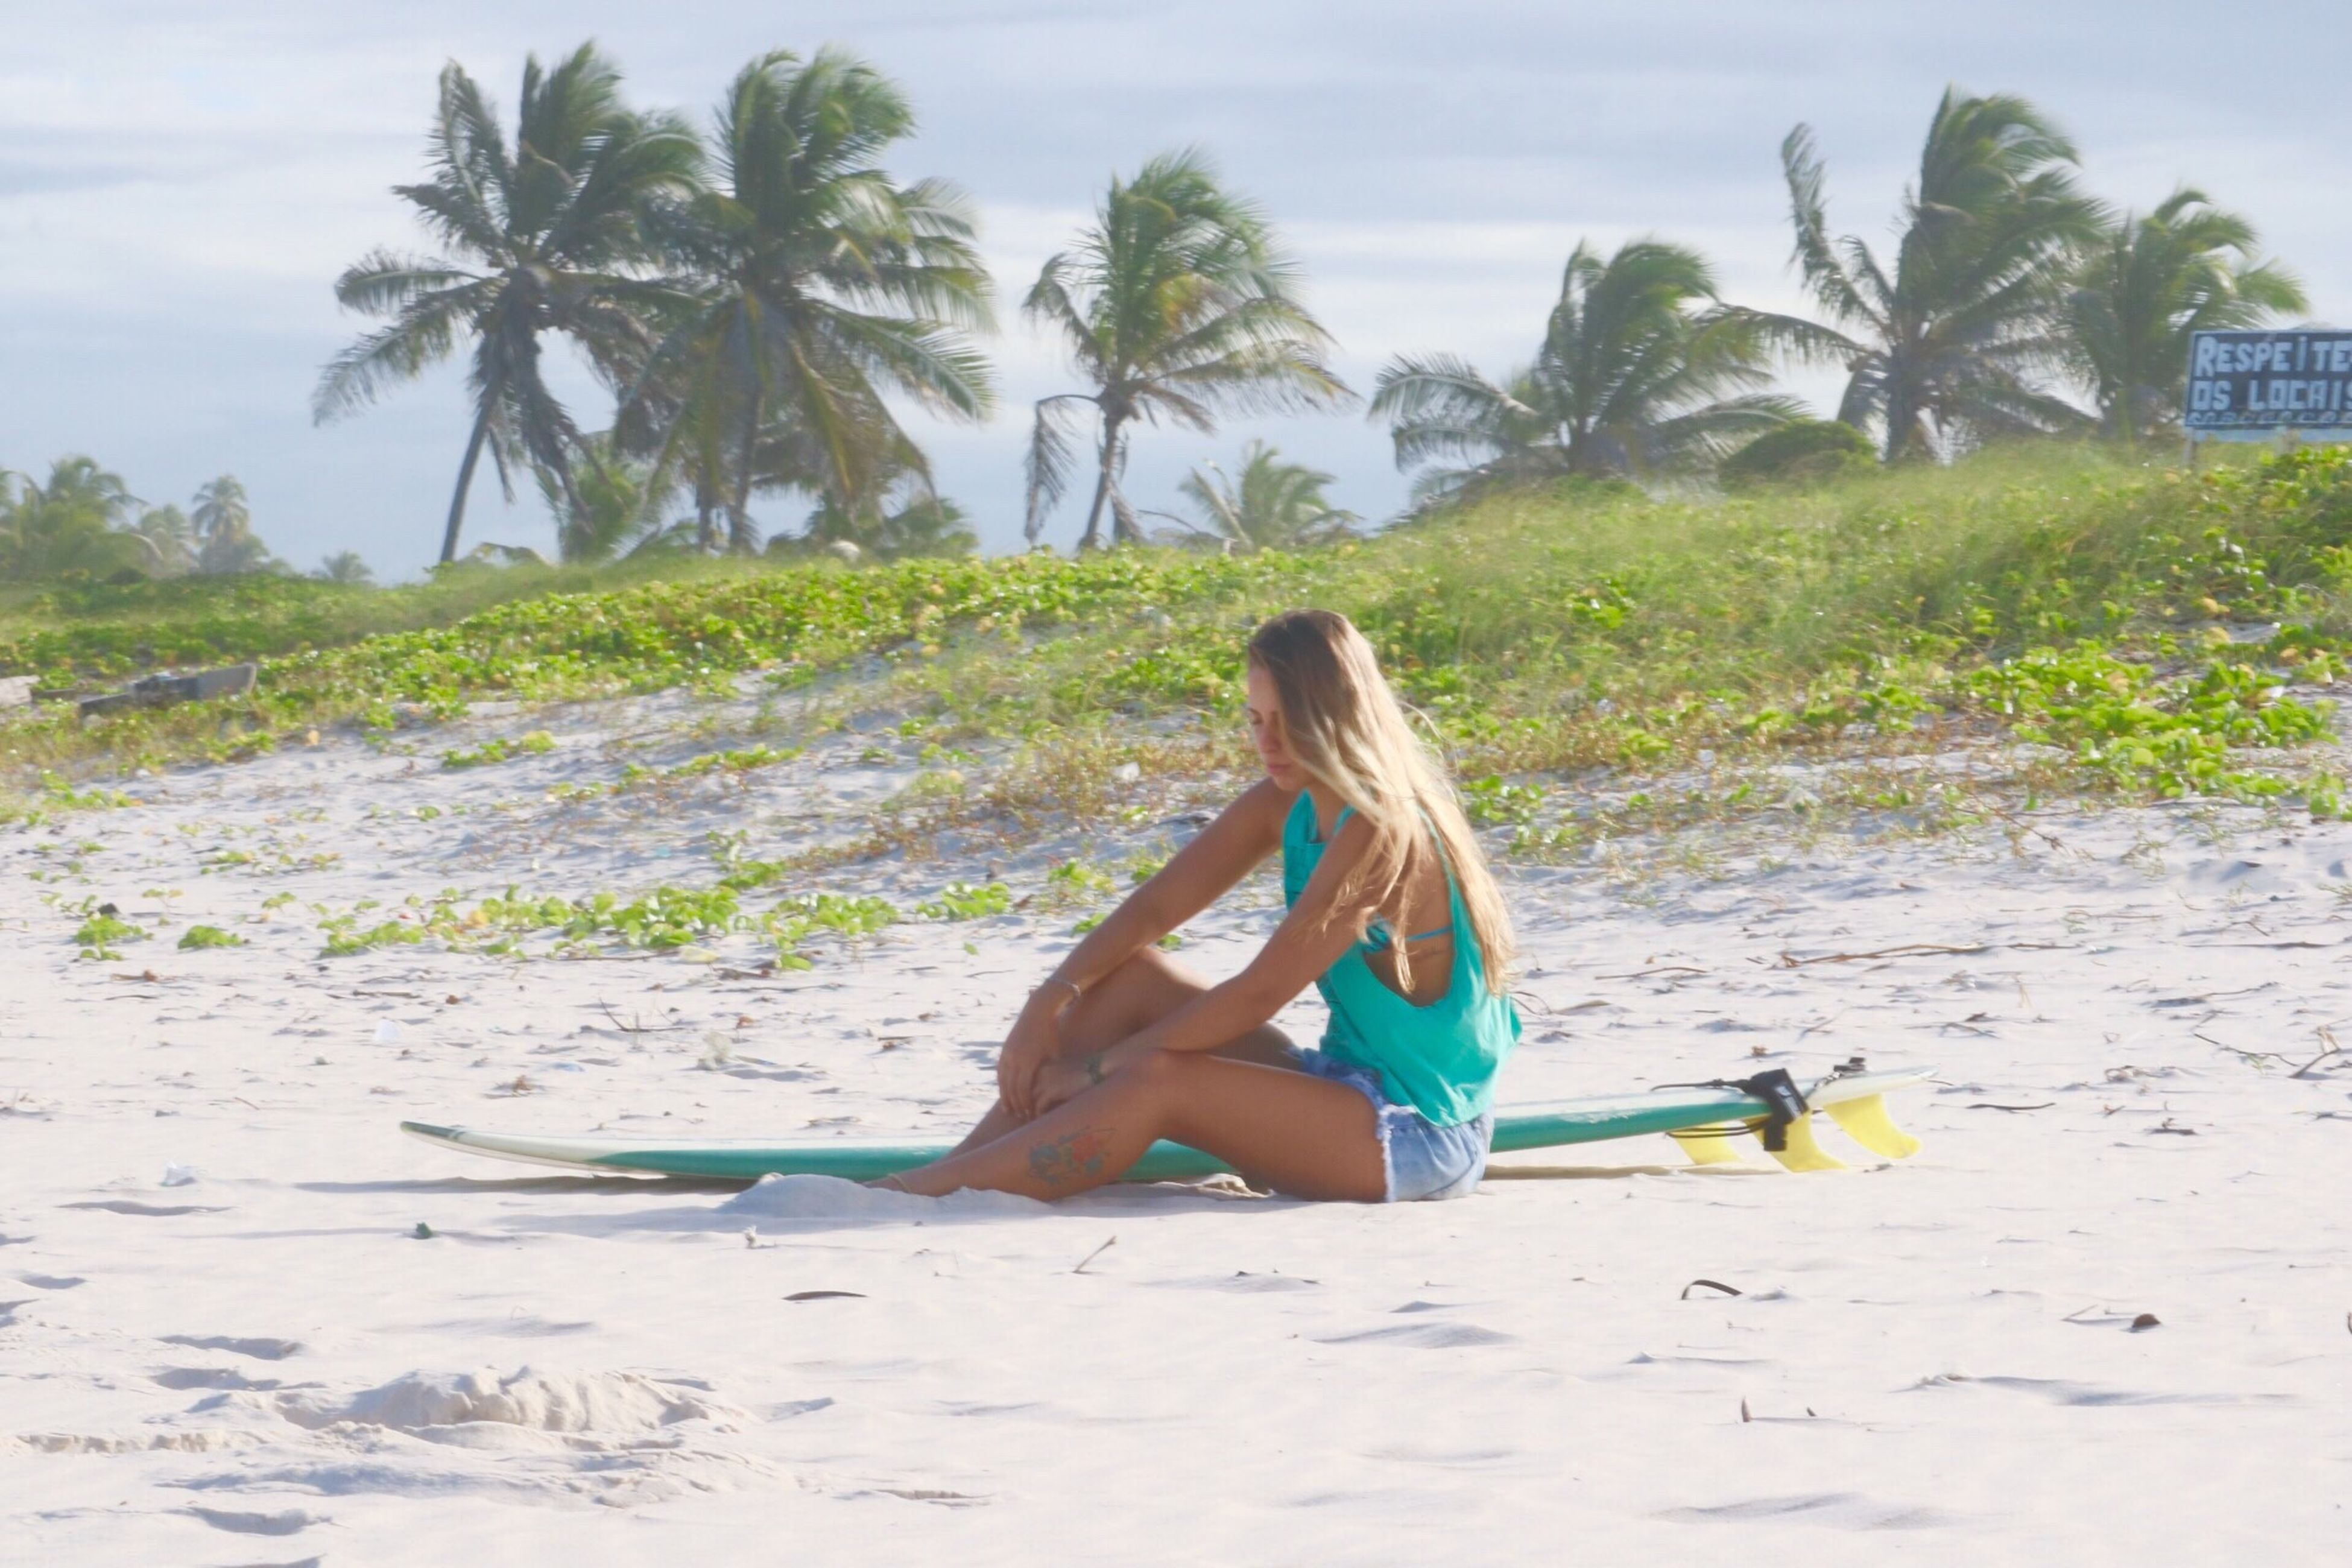 beach, sitting, relaxation, tree, palm tree, solitude, tranquil scene, full length, tranquility, sand, landscape, casual clothing, sky, young adult, young women, person, resting, day, scenics, nature, vacations, escapism, summer, non-urban scene, field, rural scene, outdoors, carefree, long hair, beauty in nature